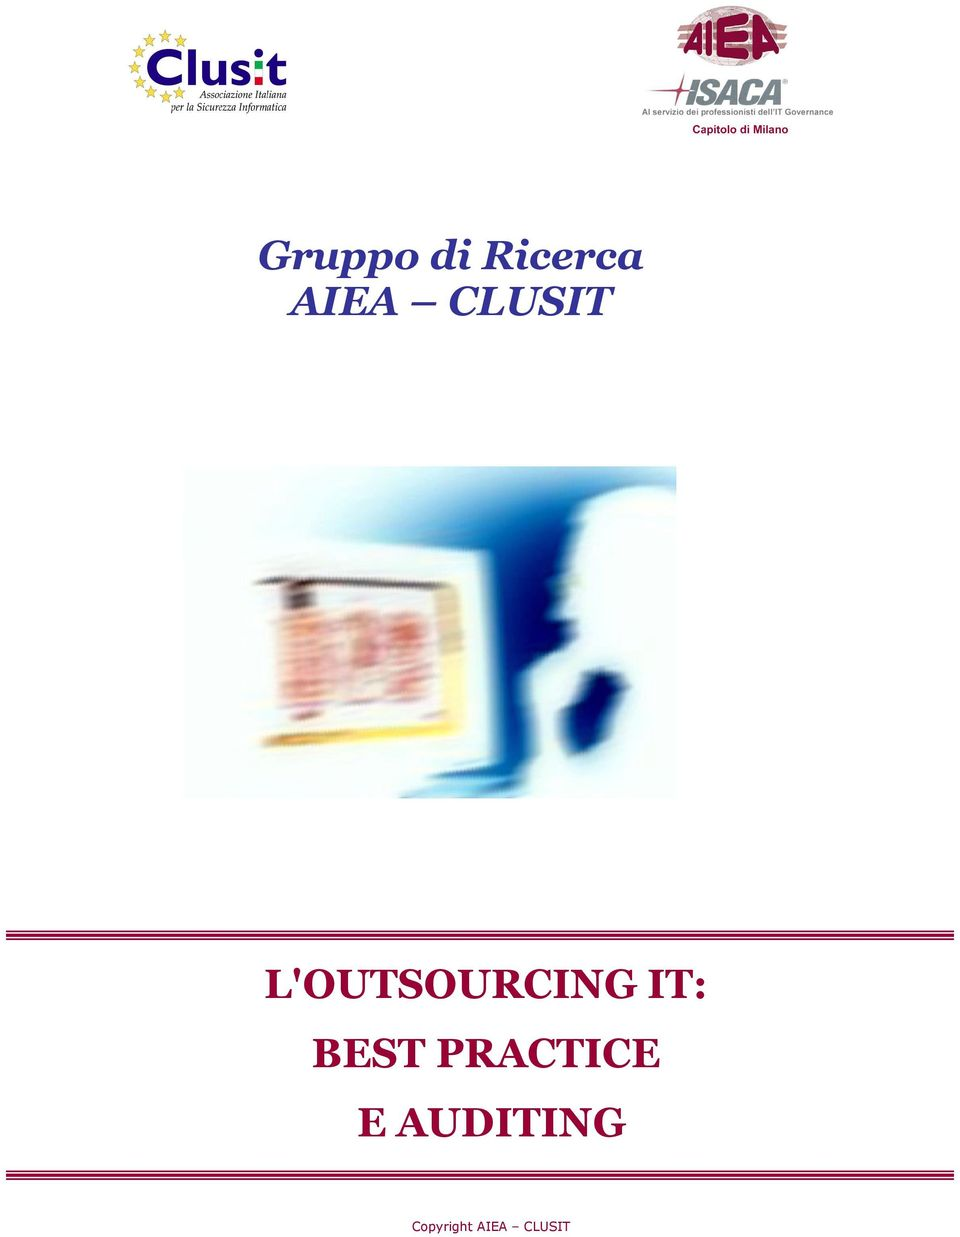 L'OUTSOURCING IT: